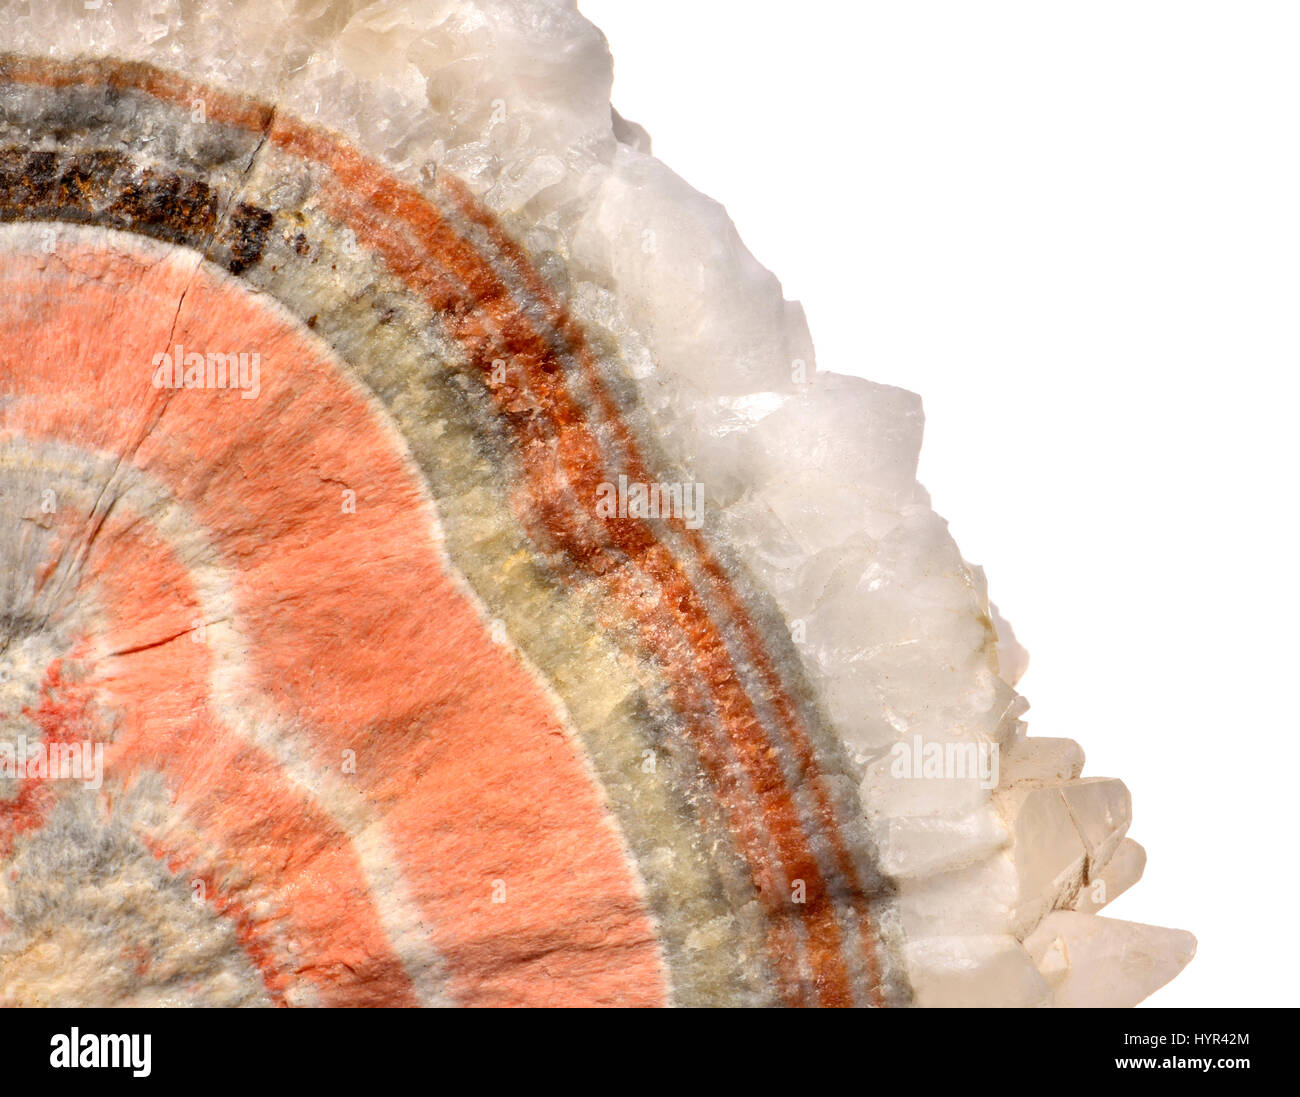 Banded Barian Celestine (strontium sulphate), sphalerite and calcite crystals Stock Photo